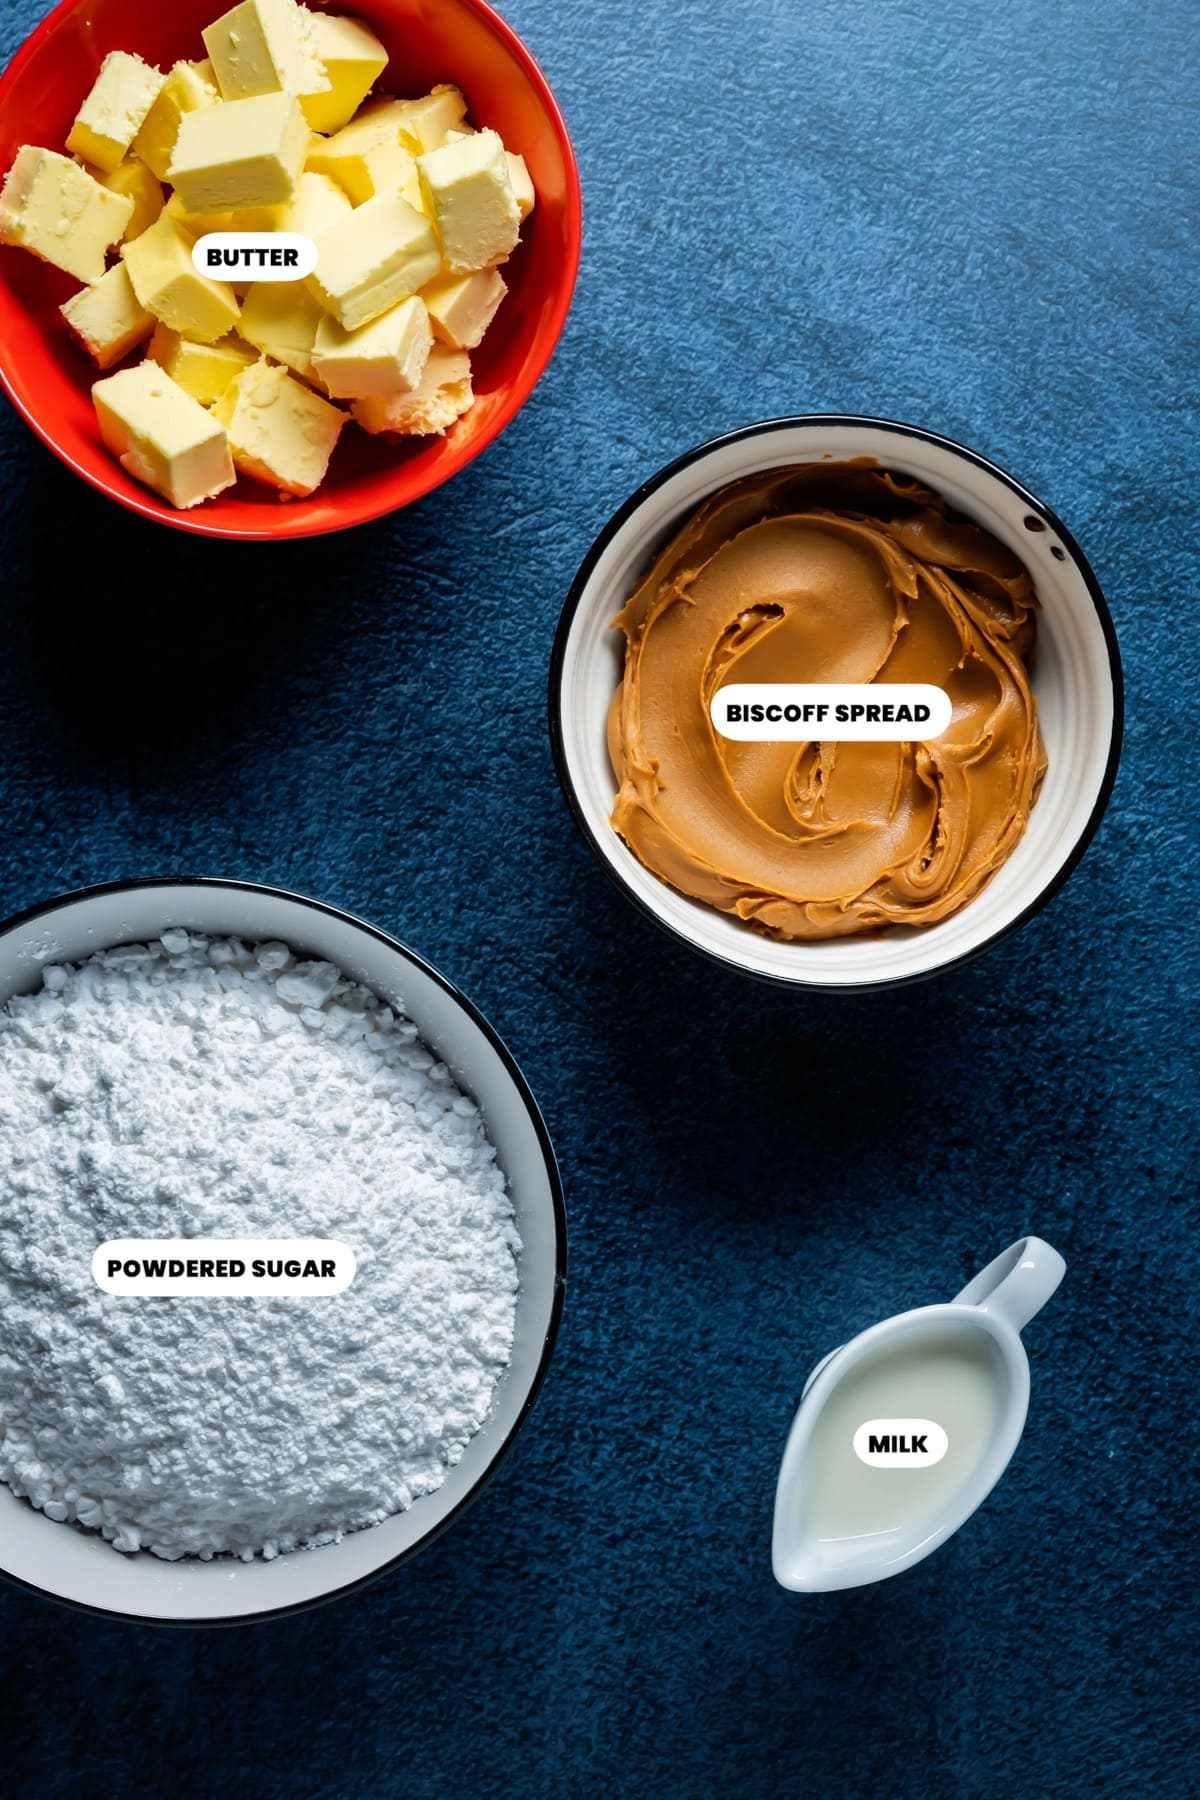 Photo of the ingredients needed to make biscoff buttercream frosting.